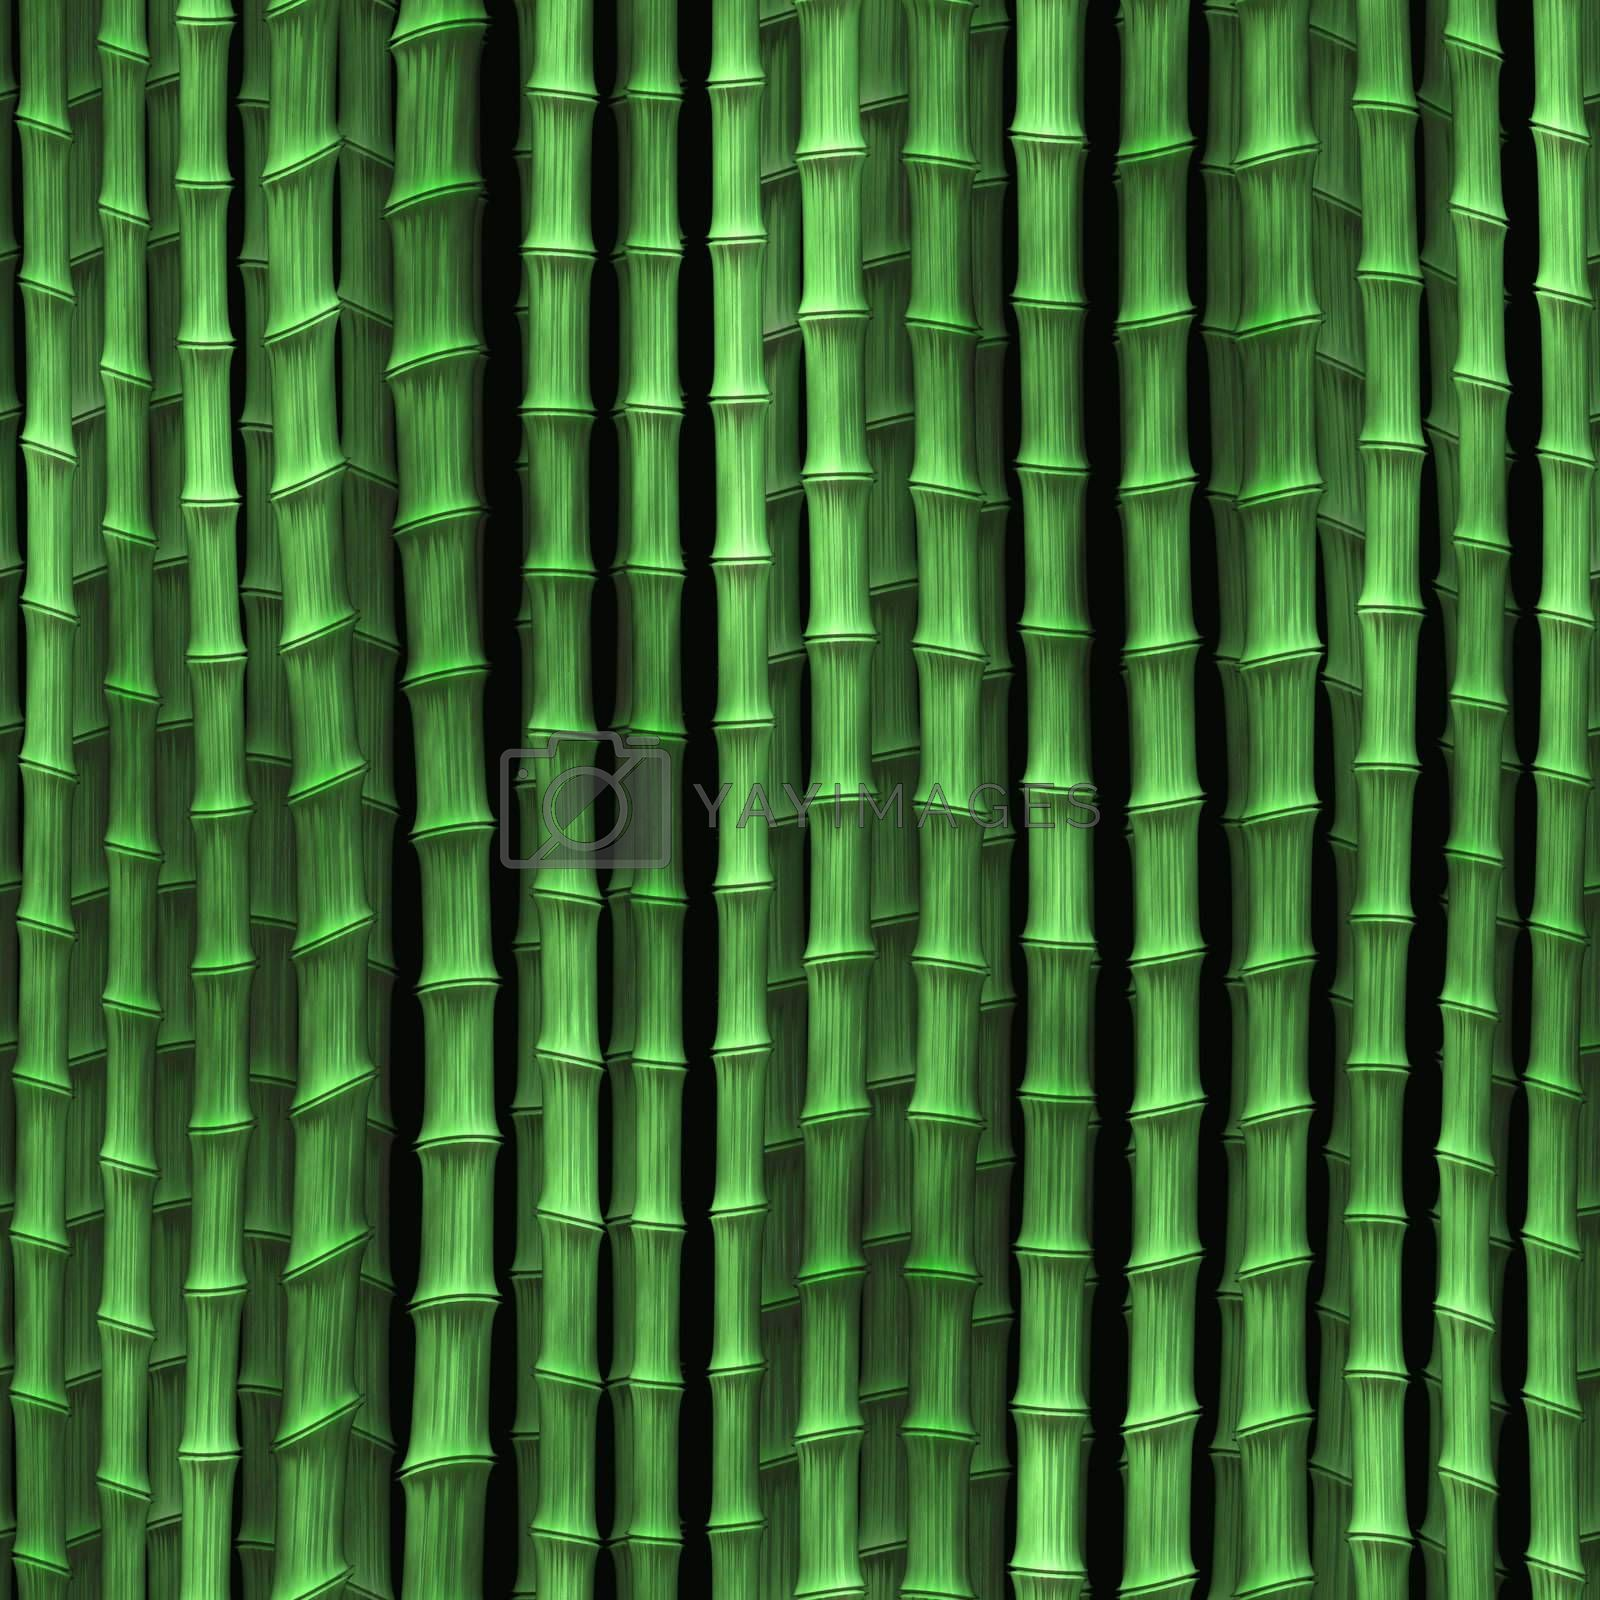 Royalty free image of Bamboo plants wallpaper by kgtoh